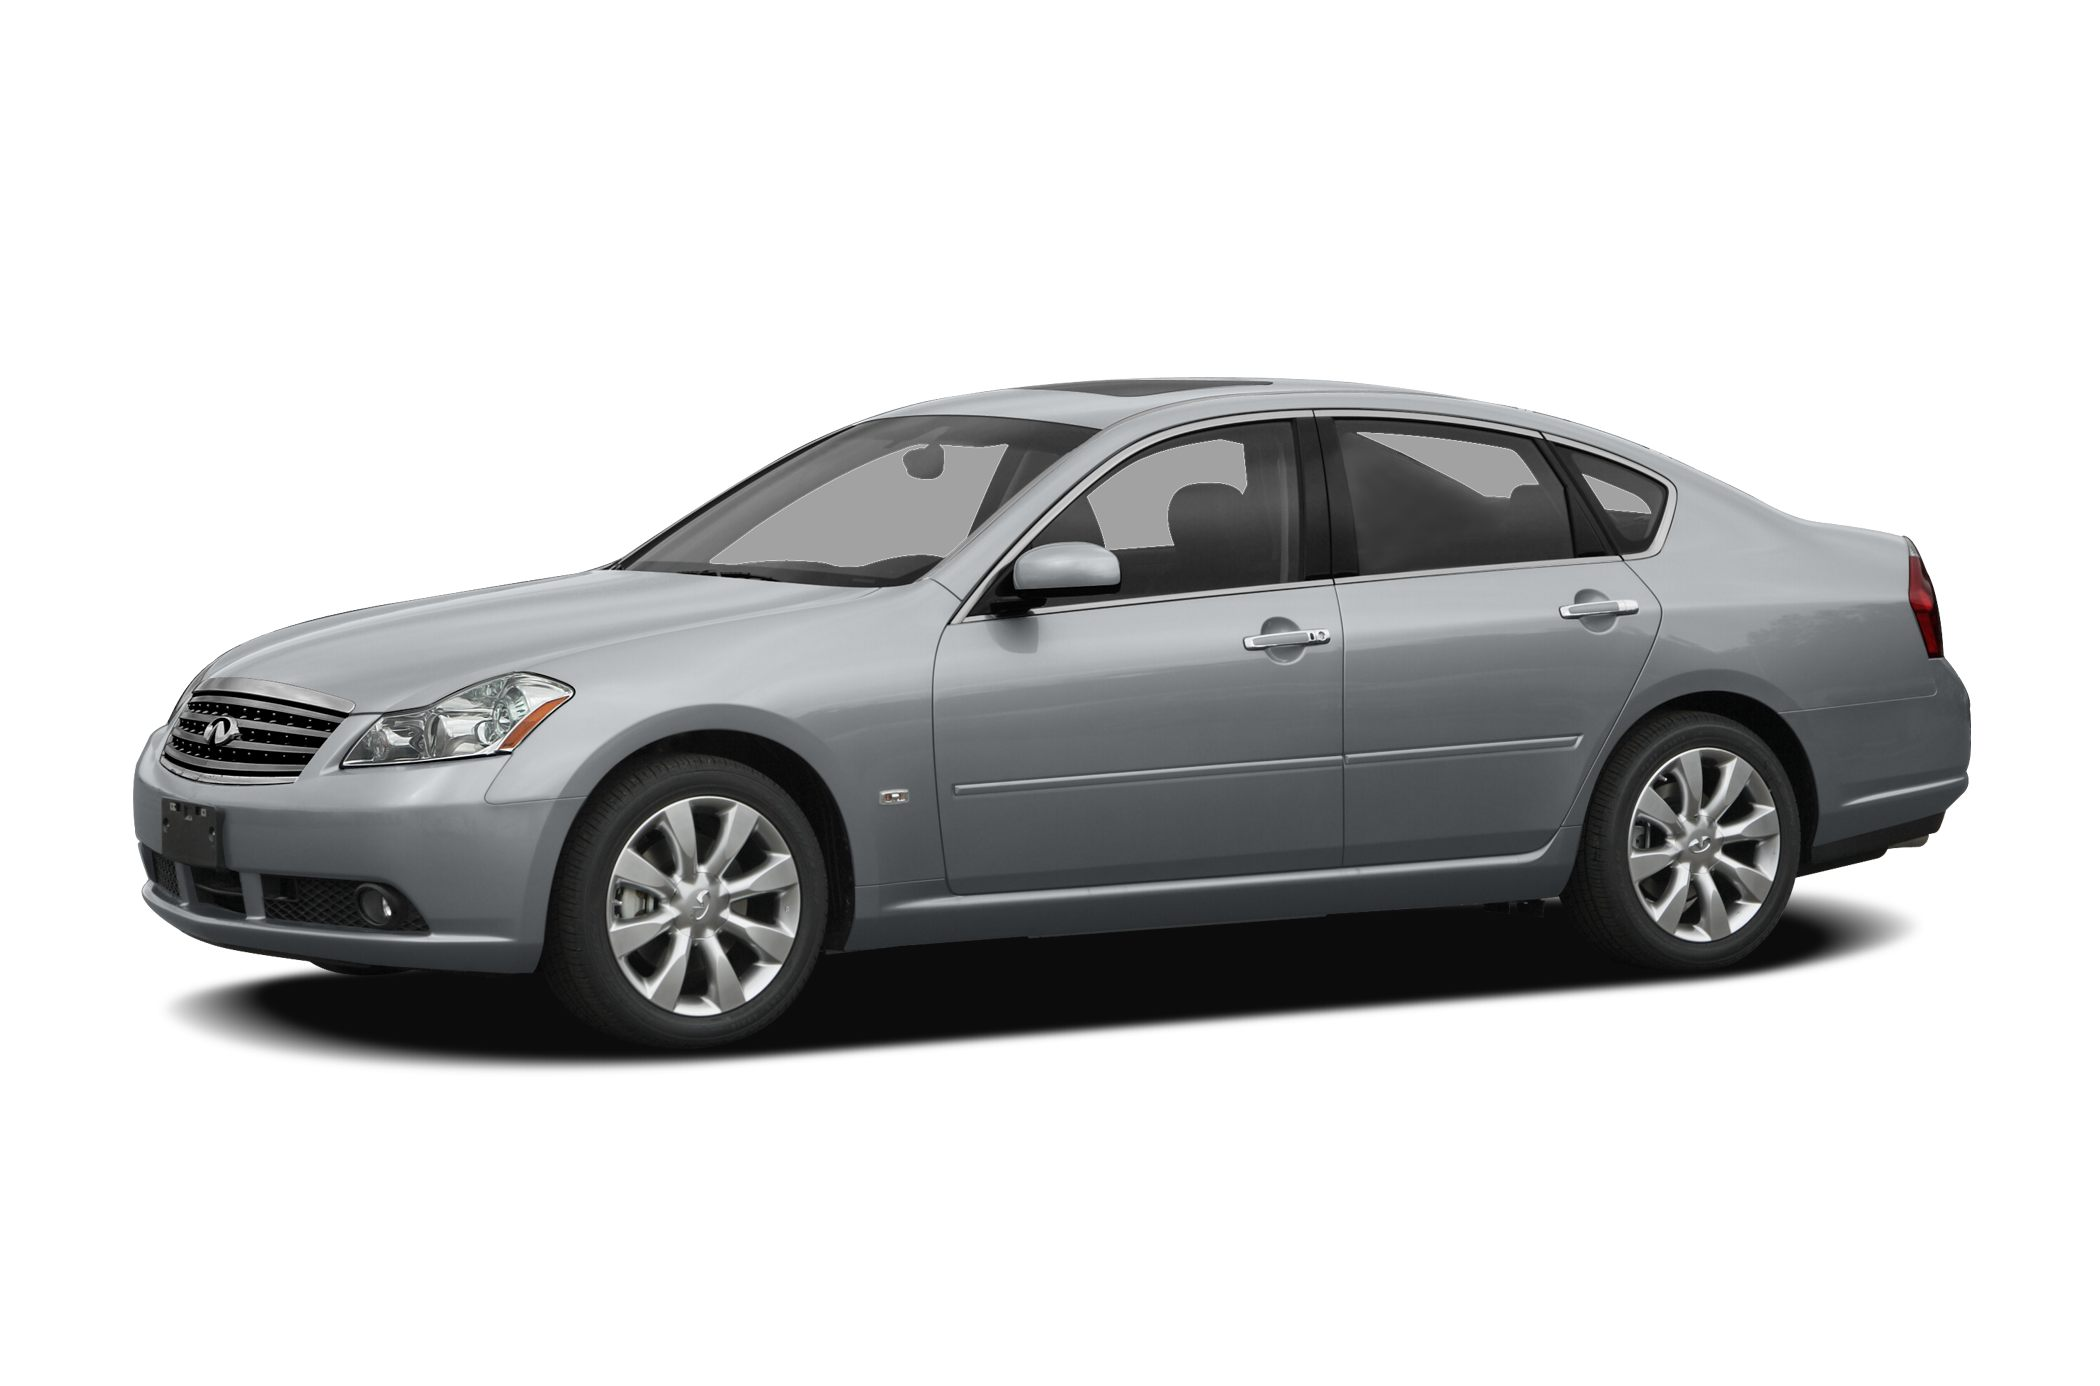 2006 Infiniti M35 Sedan for sale in Greenville for $12,995 with 167,901 miles